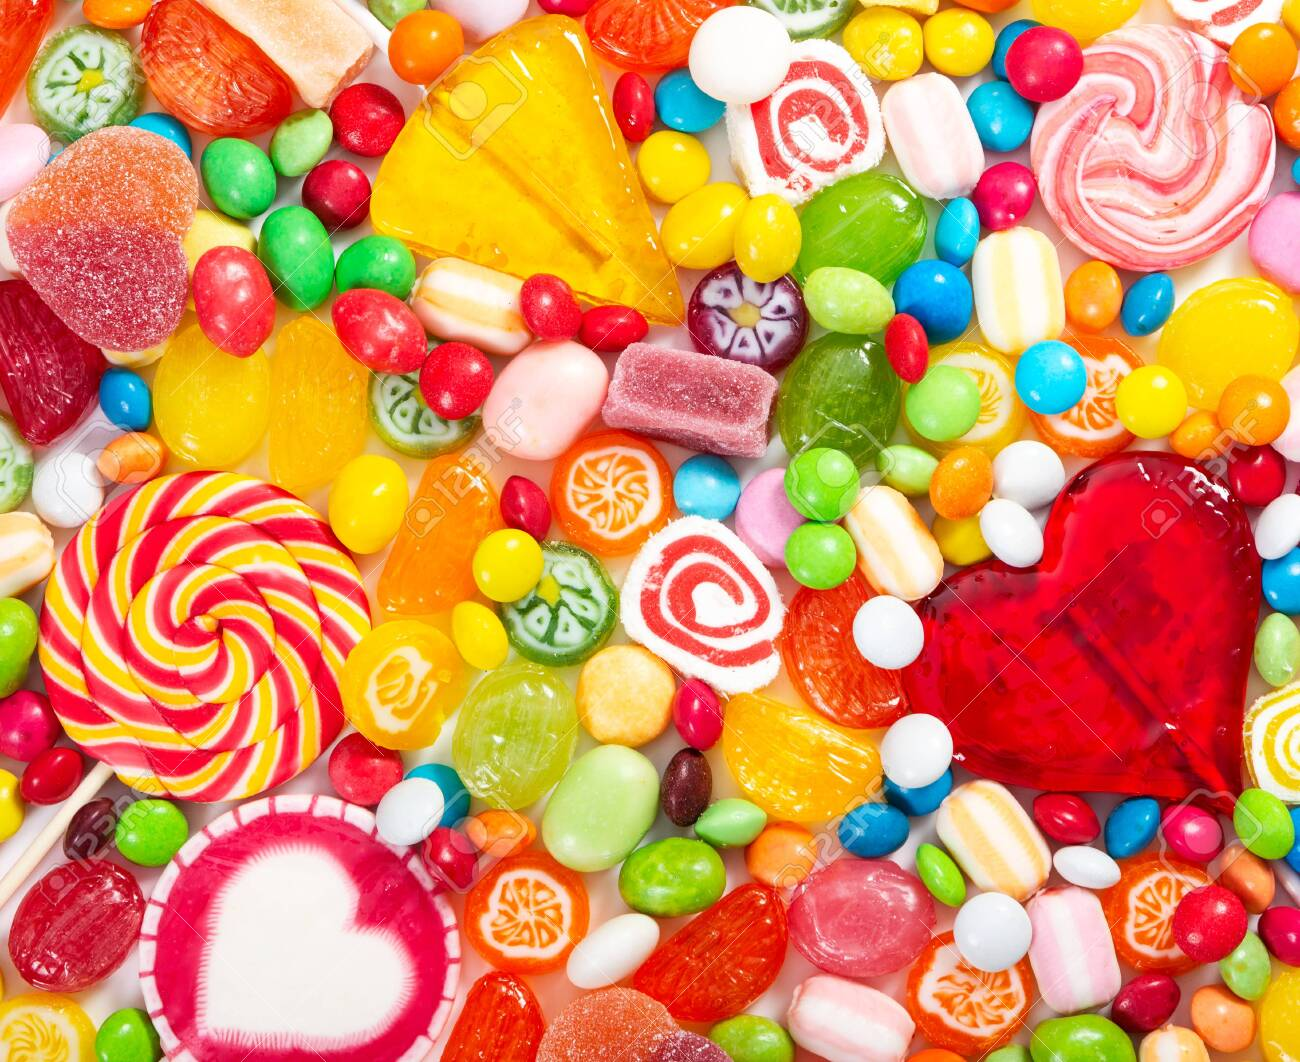 Colorful lollipops and different colored round candy. Top view. - 131872887